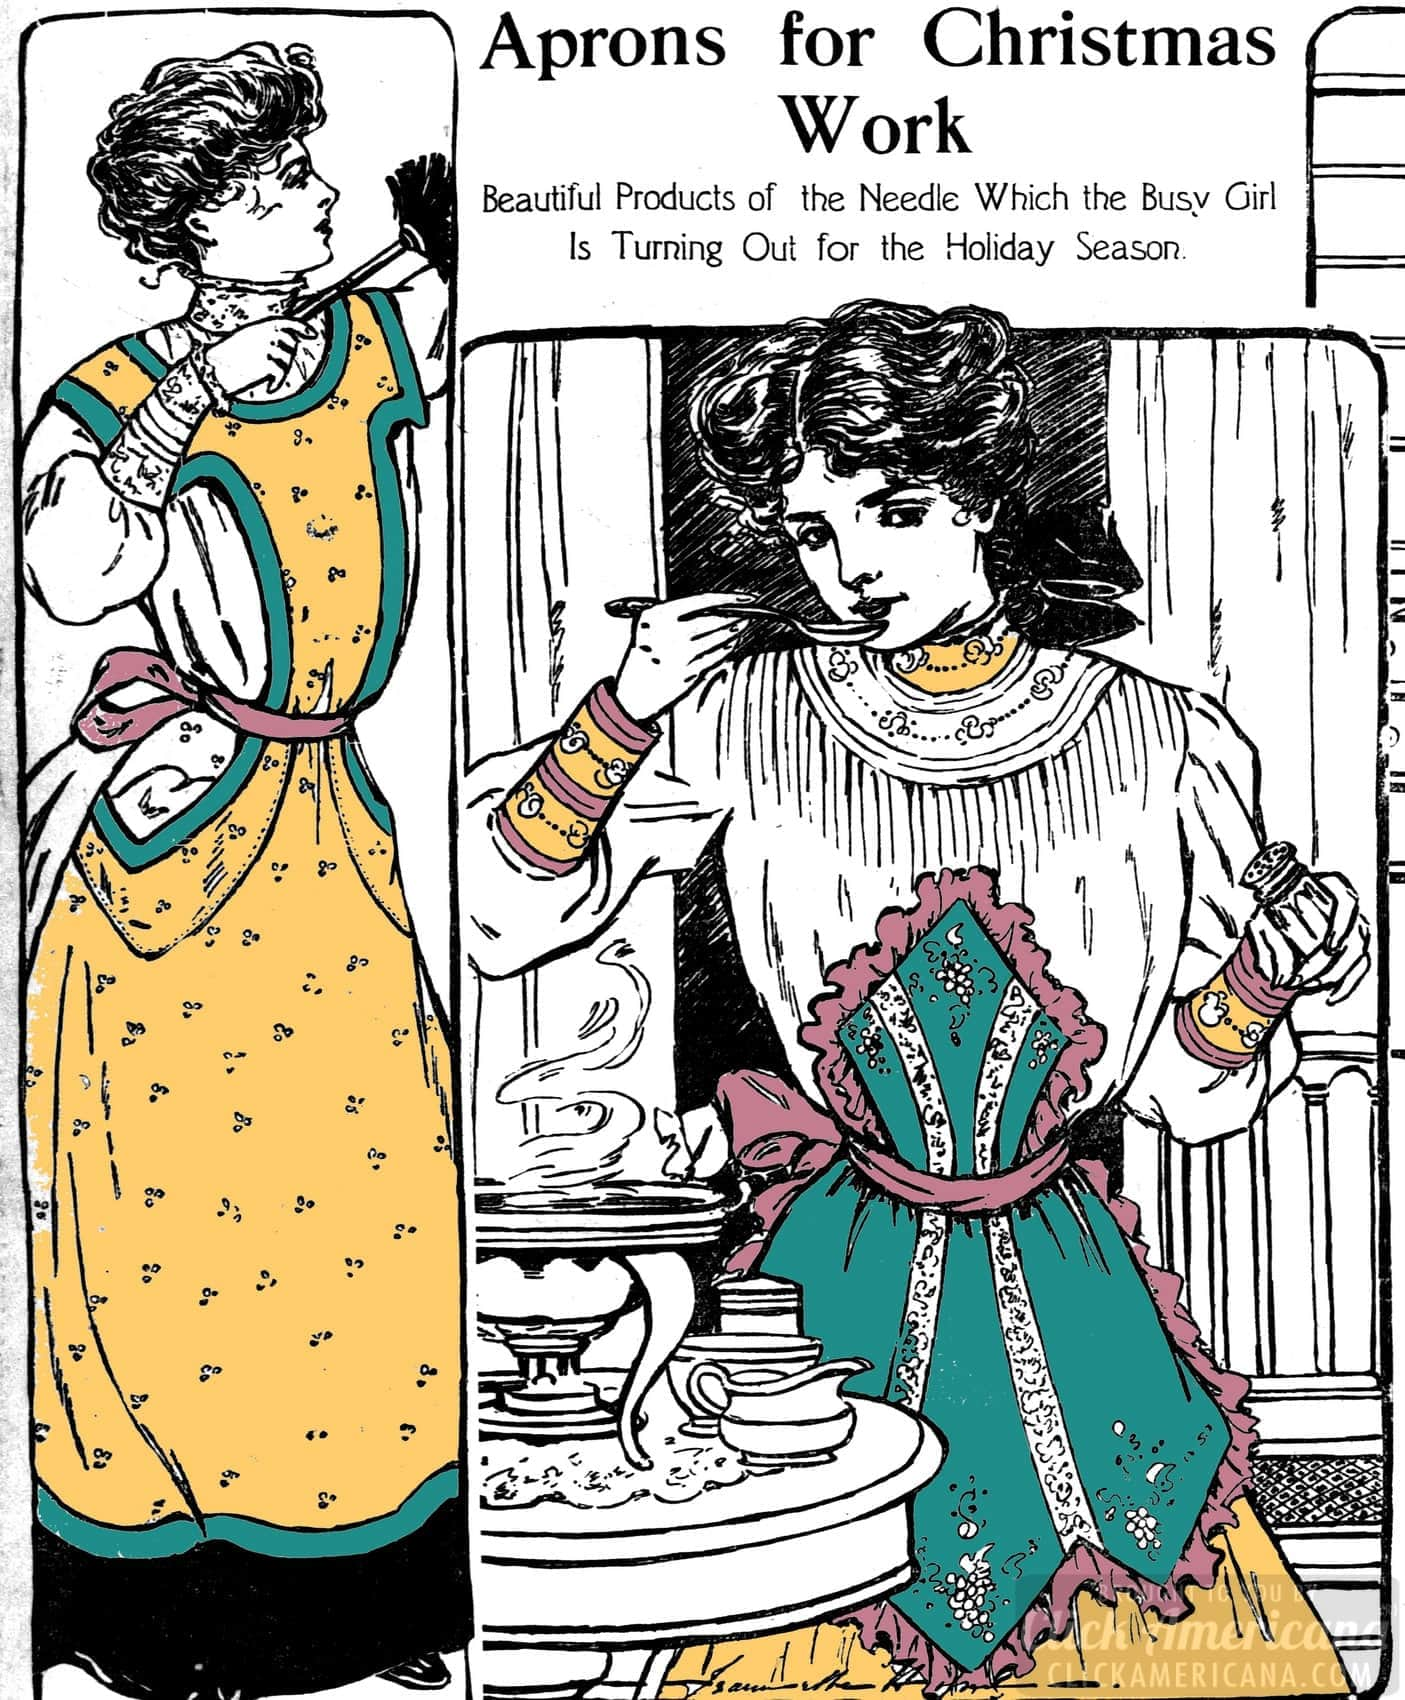 Sew & embroider some aprons for Christmas (1905)